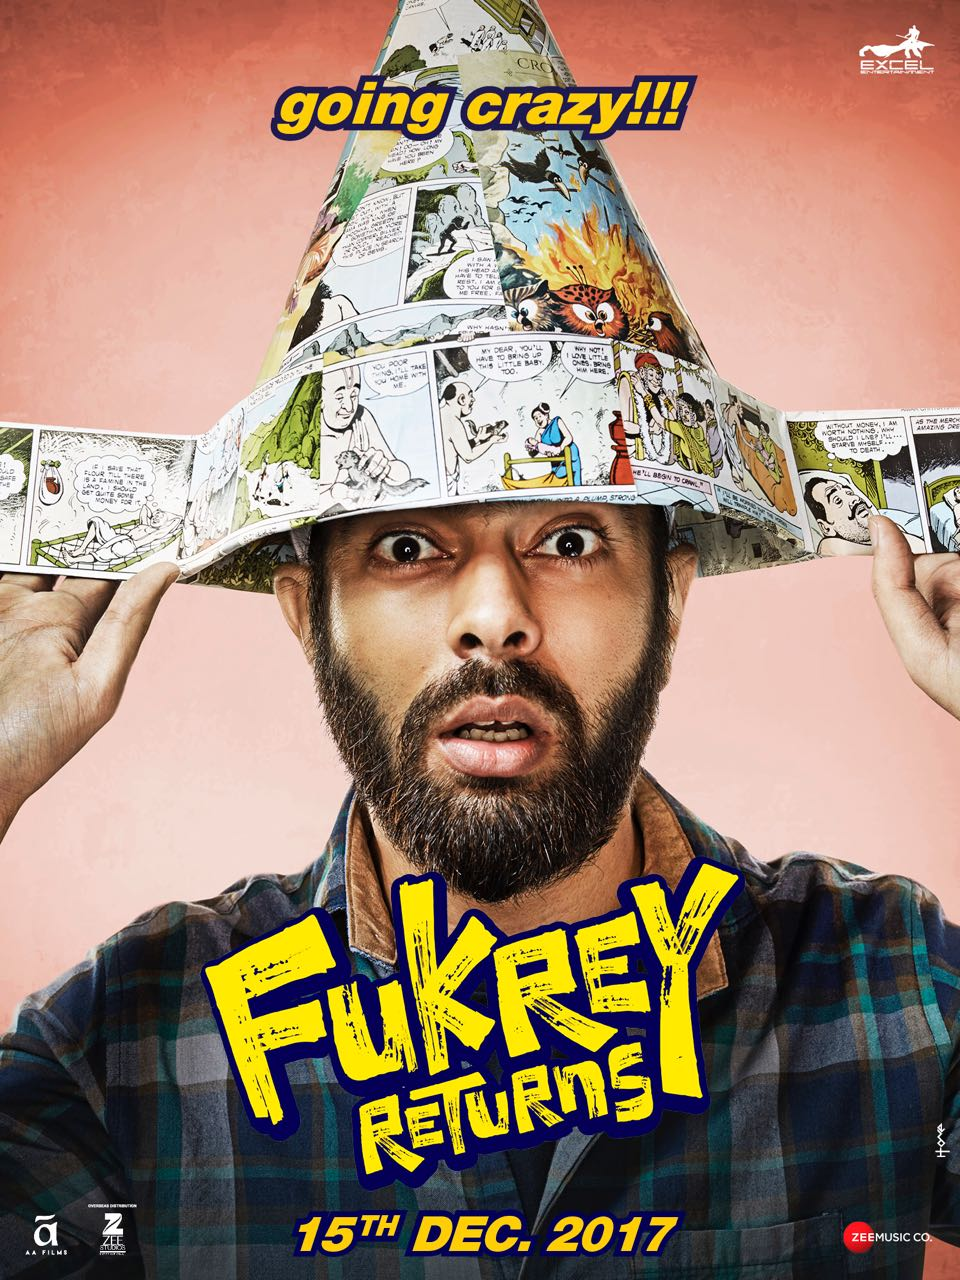 High dose of laughter comes with Fukrey Returns	 Fukrey gang of actors are back and this time they are all set to take us on a crazy laugh riot with its sequel Fukrey Returns. The makers of the upcoming comedy movie released the solo posters of Hunny (Pulkit Samrat), Choocha (Varun Sharma), Lali (Manjot Singh), Zafar (Ali Fazal) and Bholi Punjaban (Richa Chadda). Posters  The new posters give us the idea of the cast members' screen characters. Fukrey was one of the most surprising box-office hits of 2013.  Directed by Mrighdeep Singh, produced by Excel Entertainment and distributed by Zee Studios International, Fukrey Returns is slated to release on December 15th, 2017.